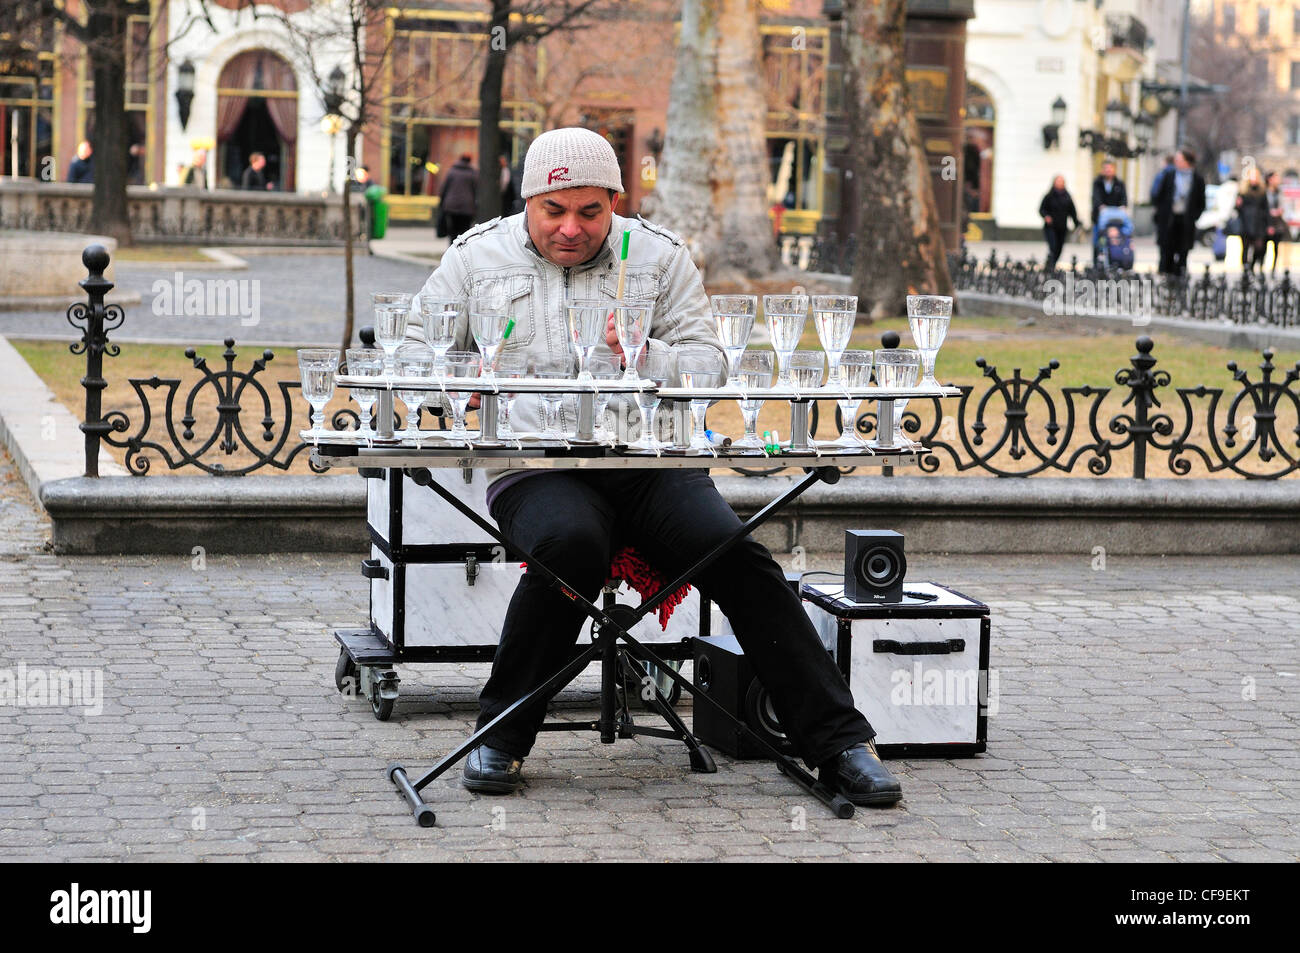 street musician in Budapest entertaining the crowds by playing on wine glasses filled with varied levels of water - Stock Image